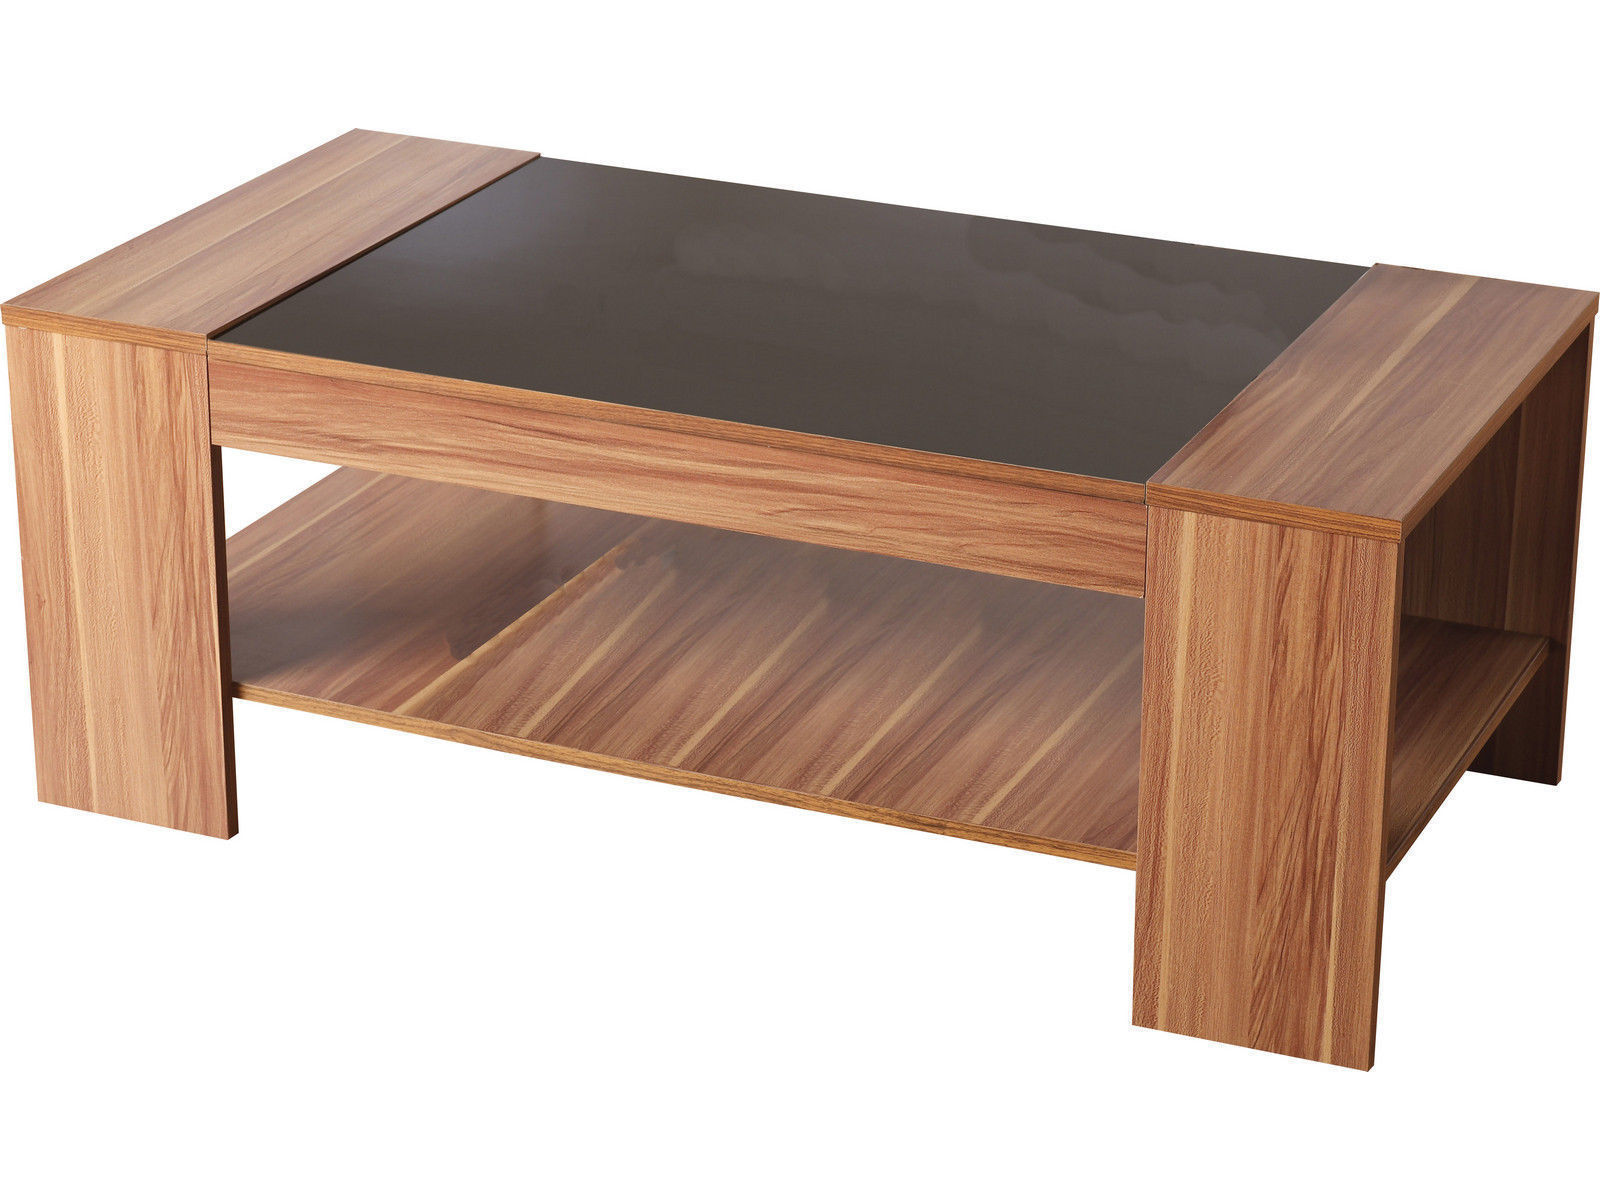 Black Gloss Walnut Veneer Coffee Table Hollywood By Seconique Ebay